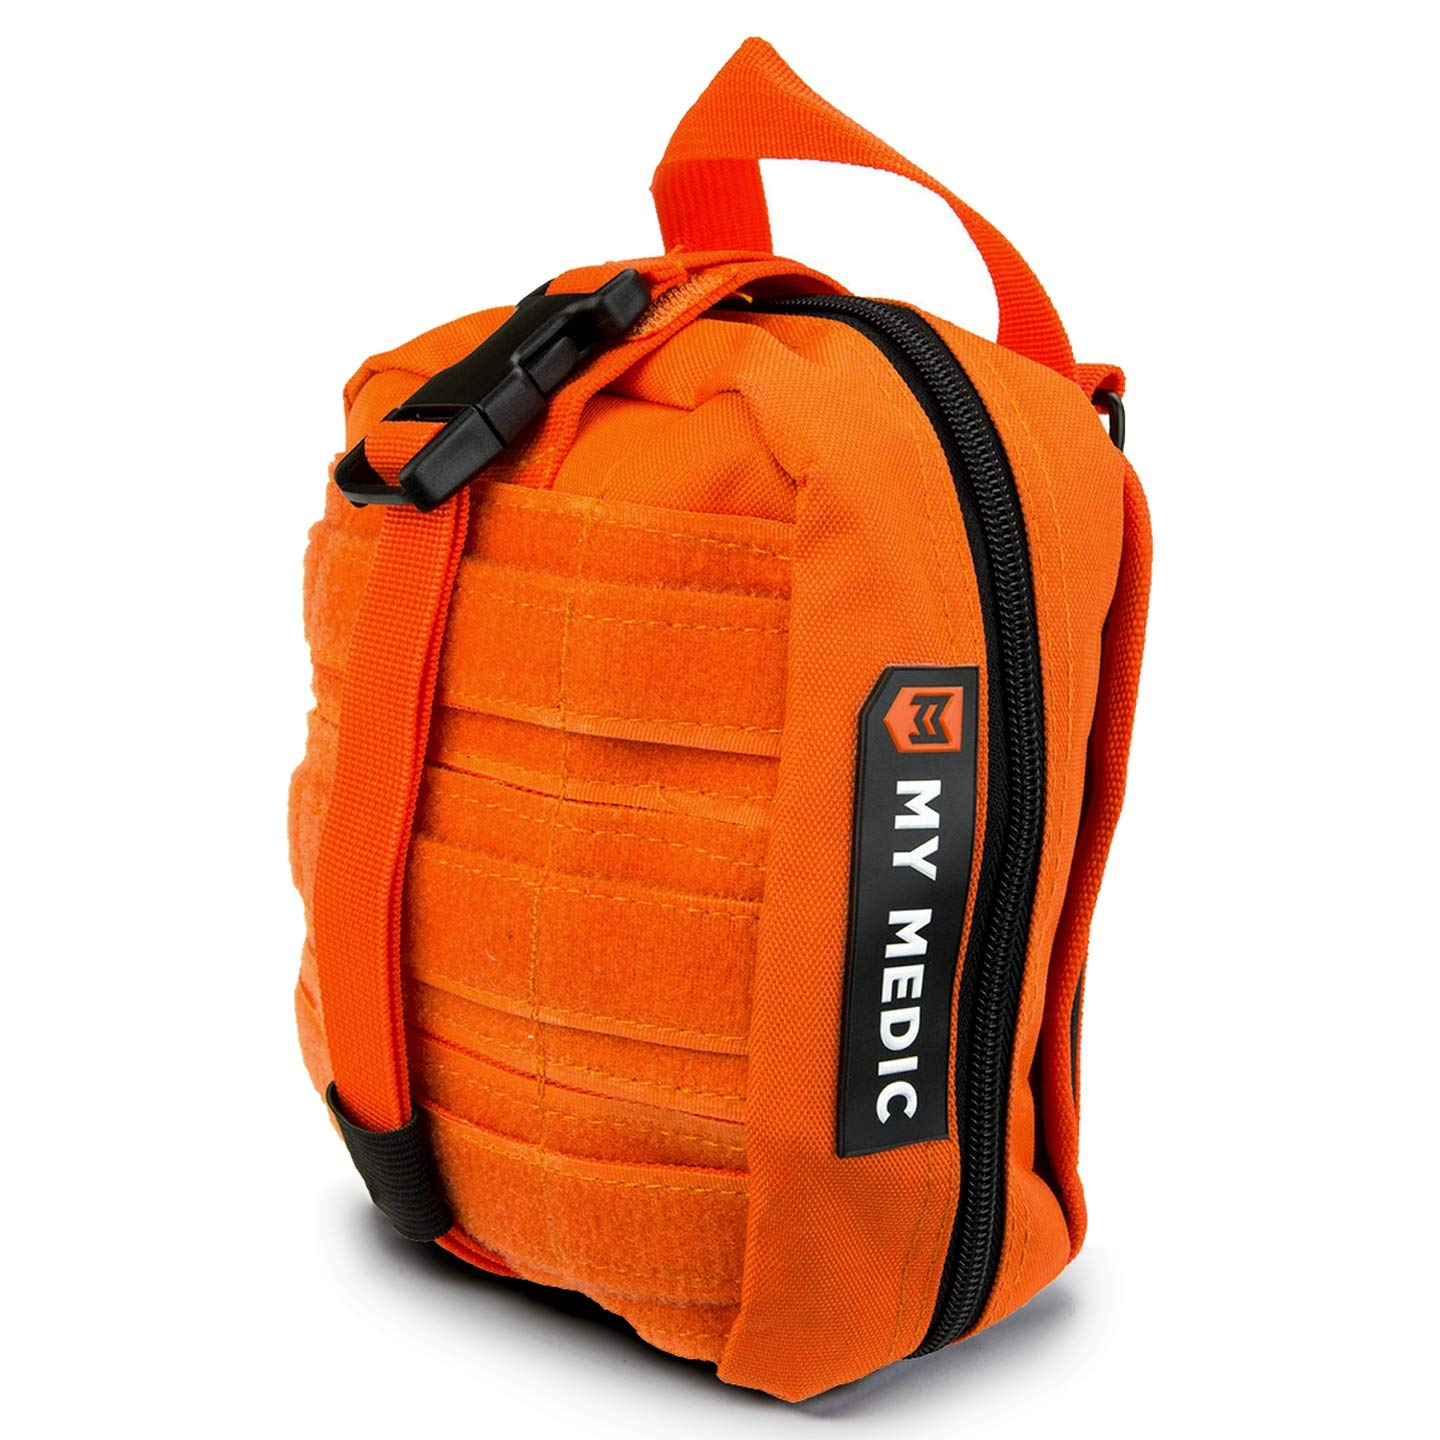 My Medic MyFak First Aid Kit - Water Resistant Bag, Bandages, Burn Aids, CPR Shield, Survival First Aid Kit, Airway, Tourniquet, Stainless Steel Instruments - Advanced - Orange by My Medic